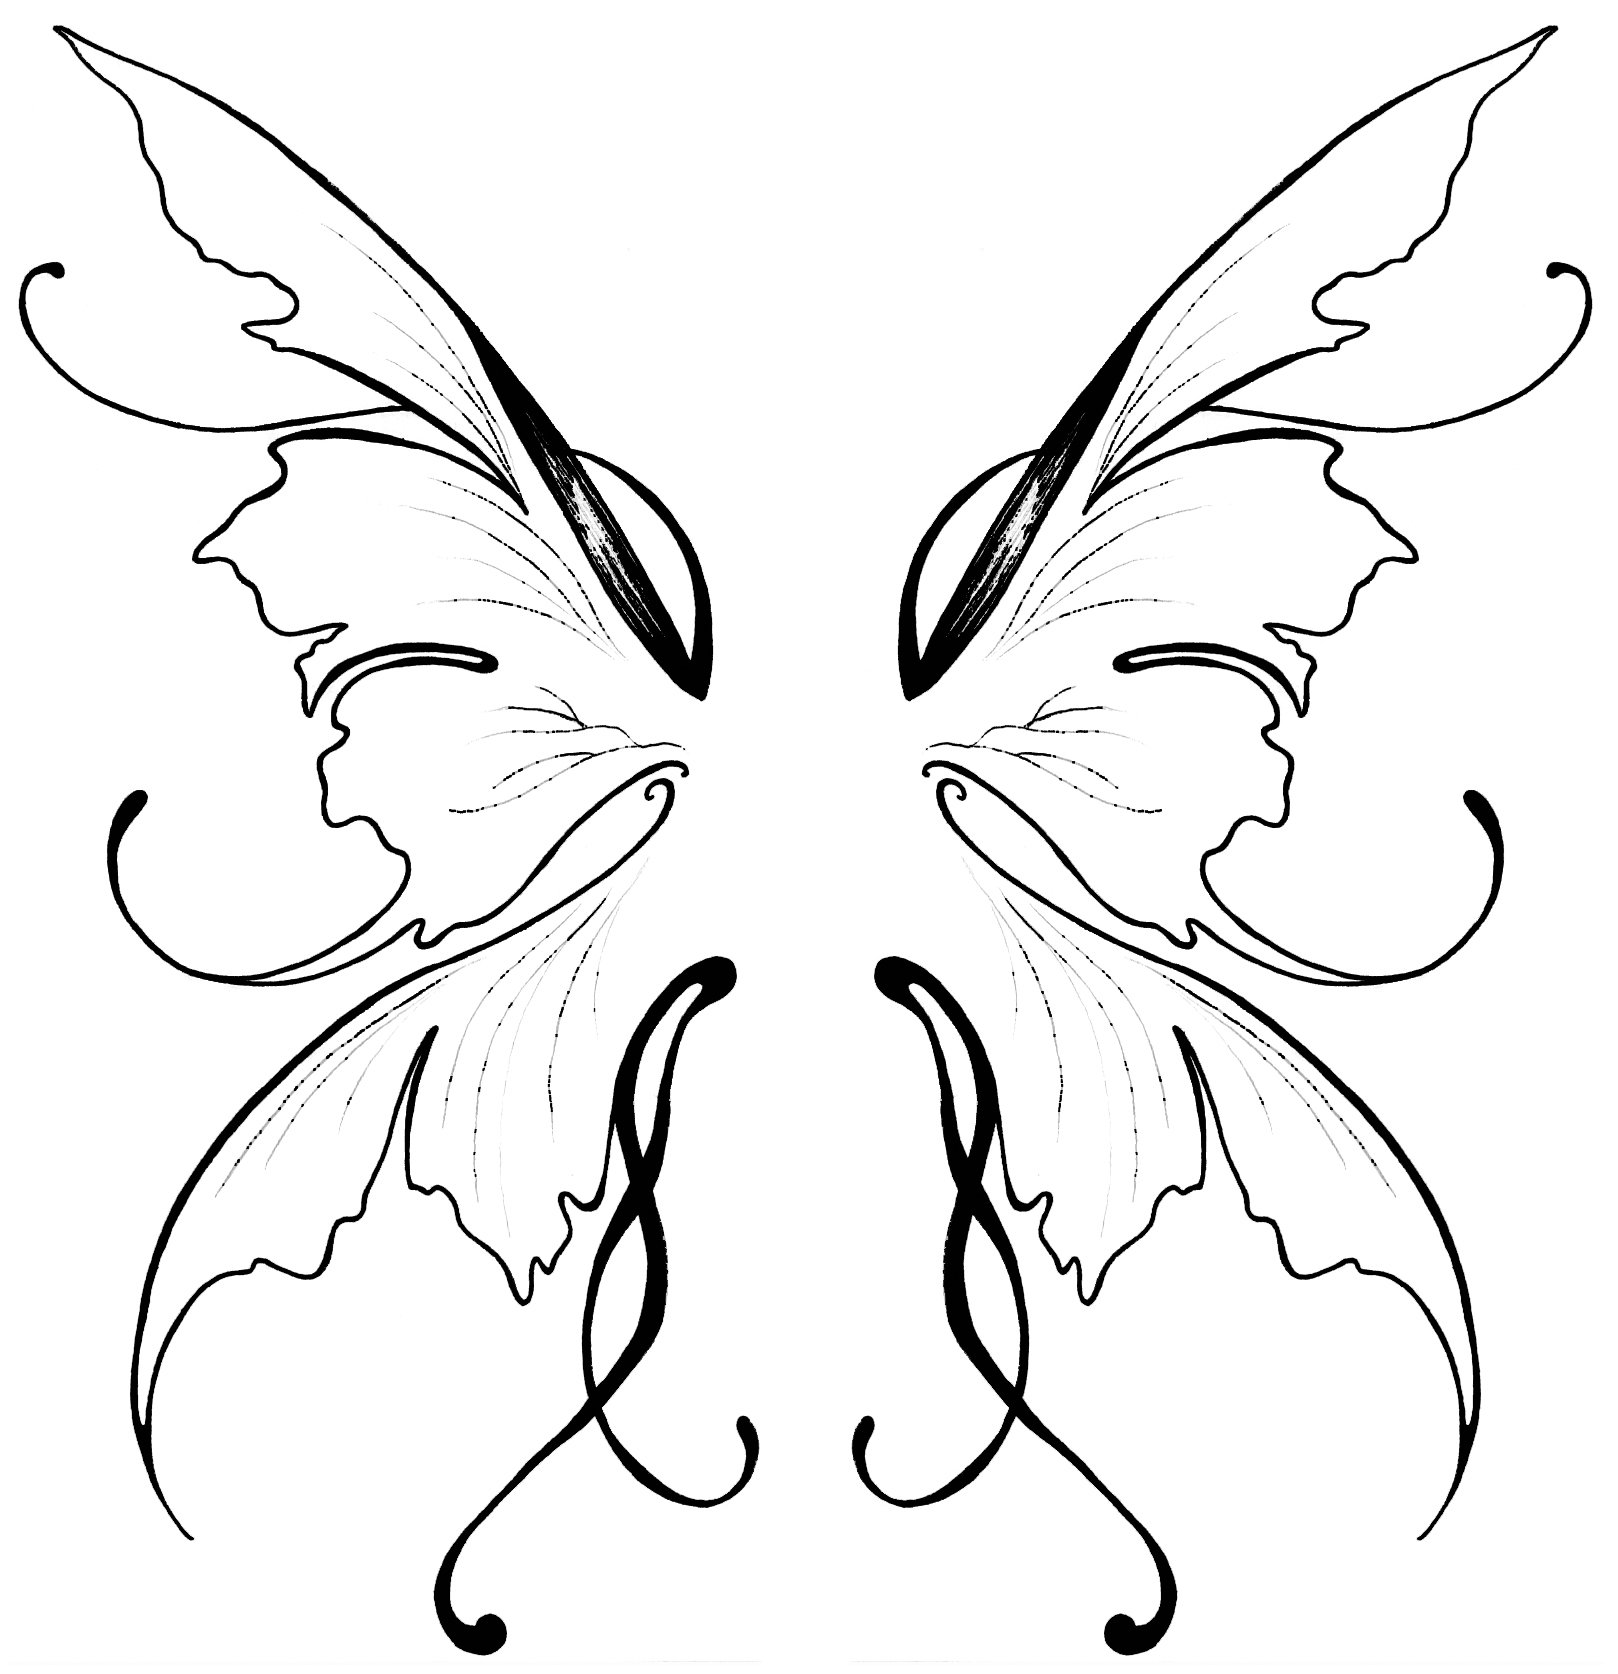 Drawn fairy side view Images Pinterest I on about